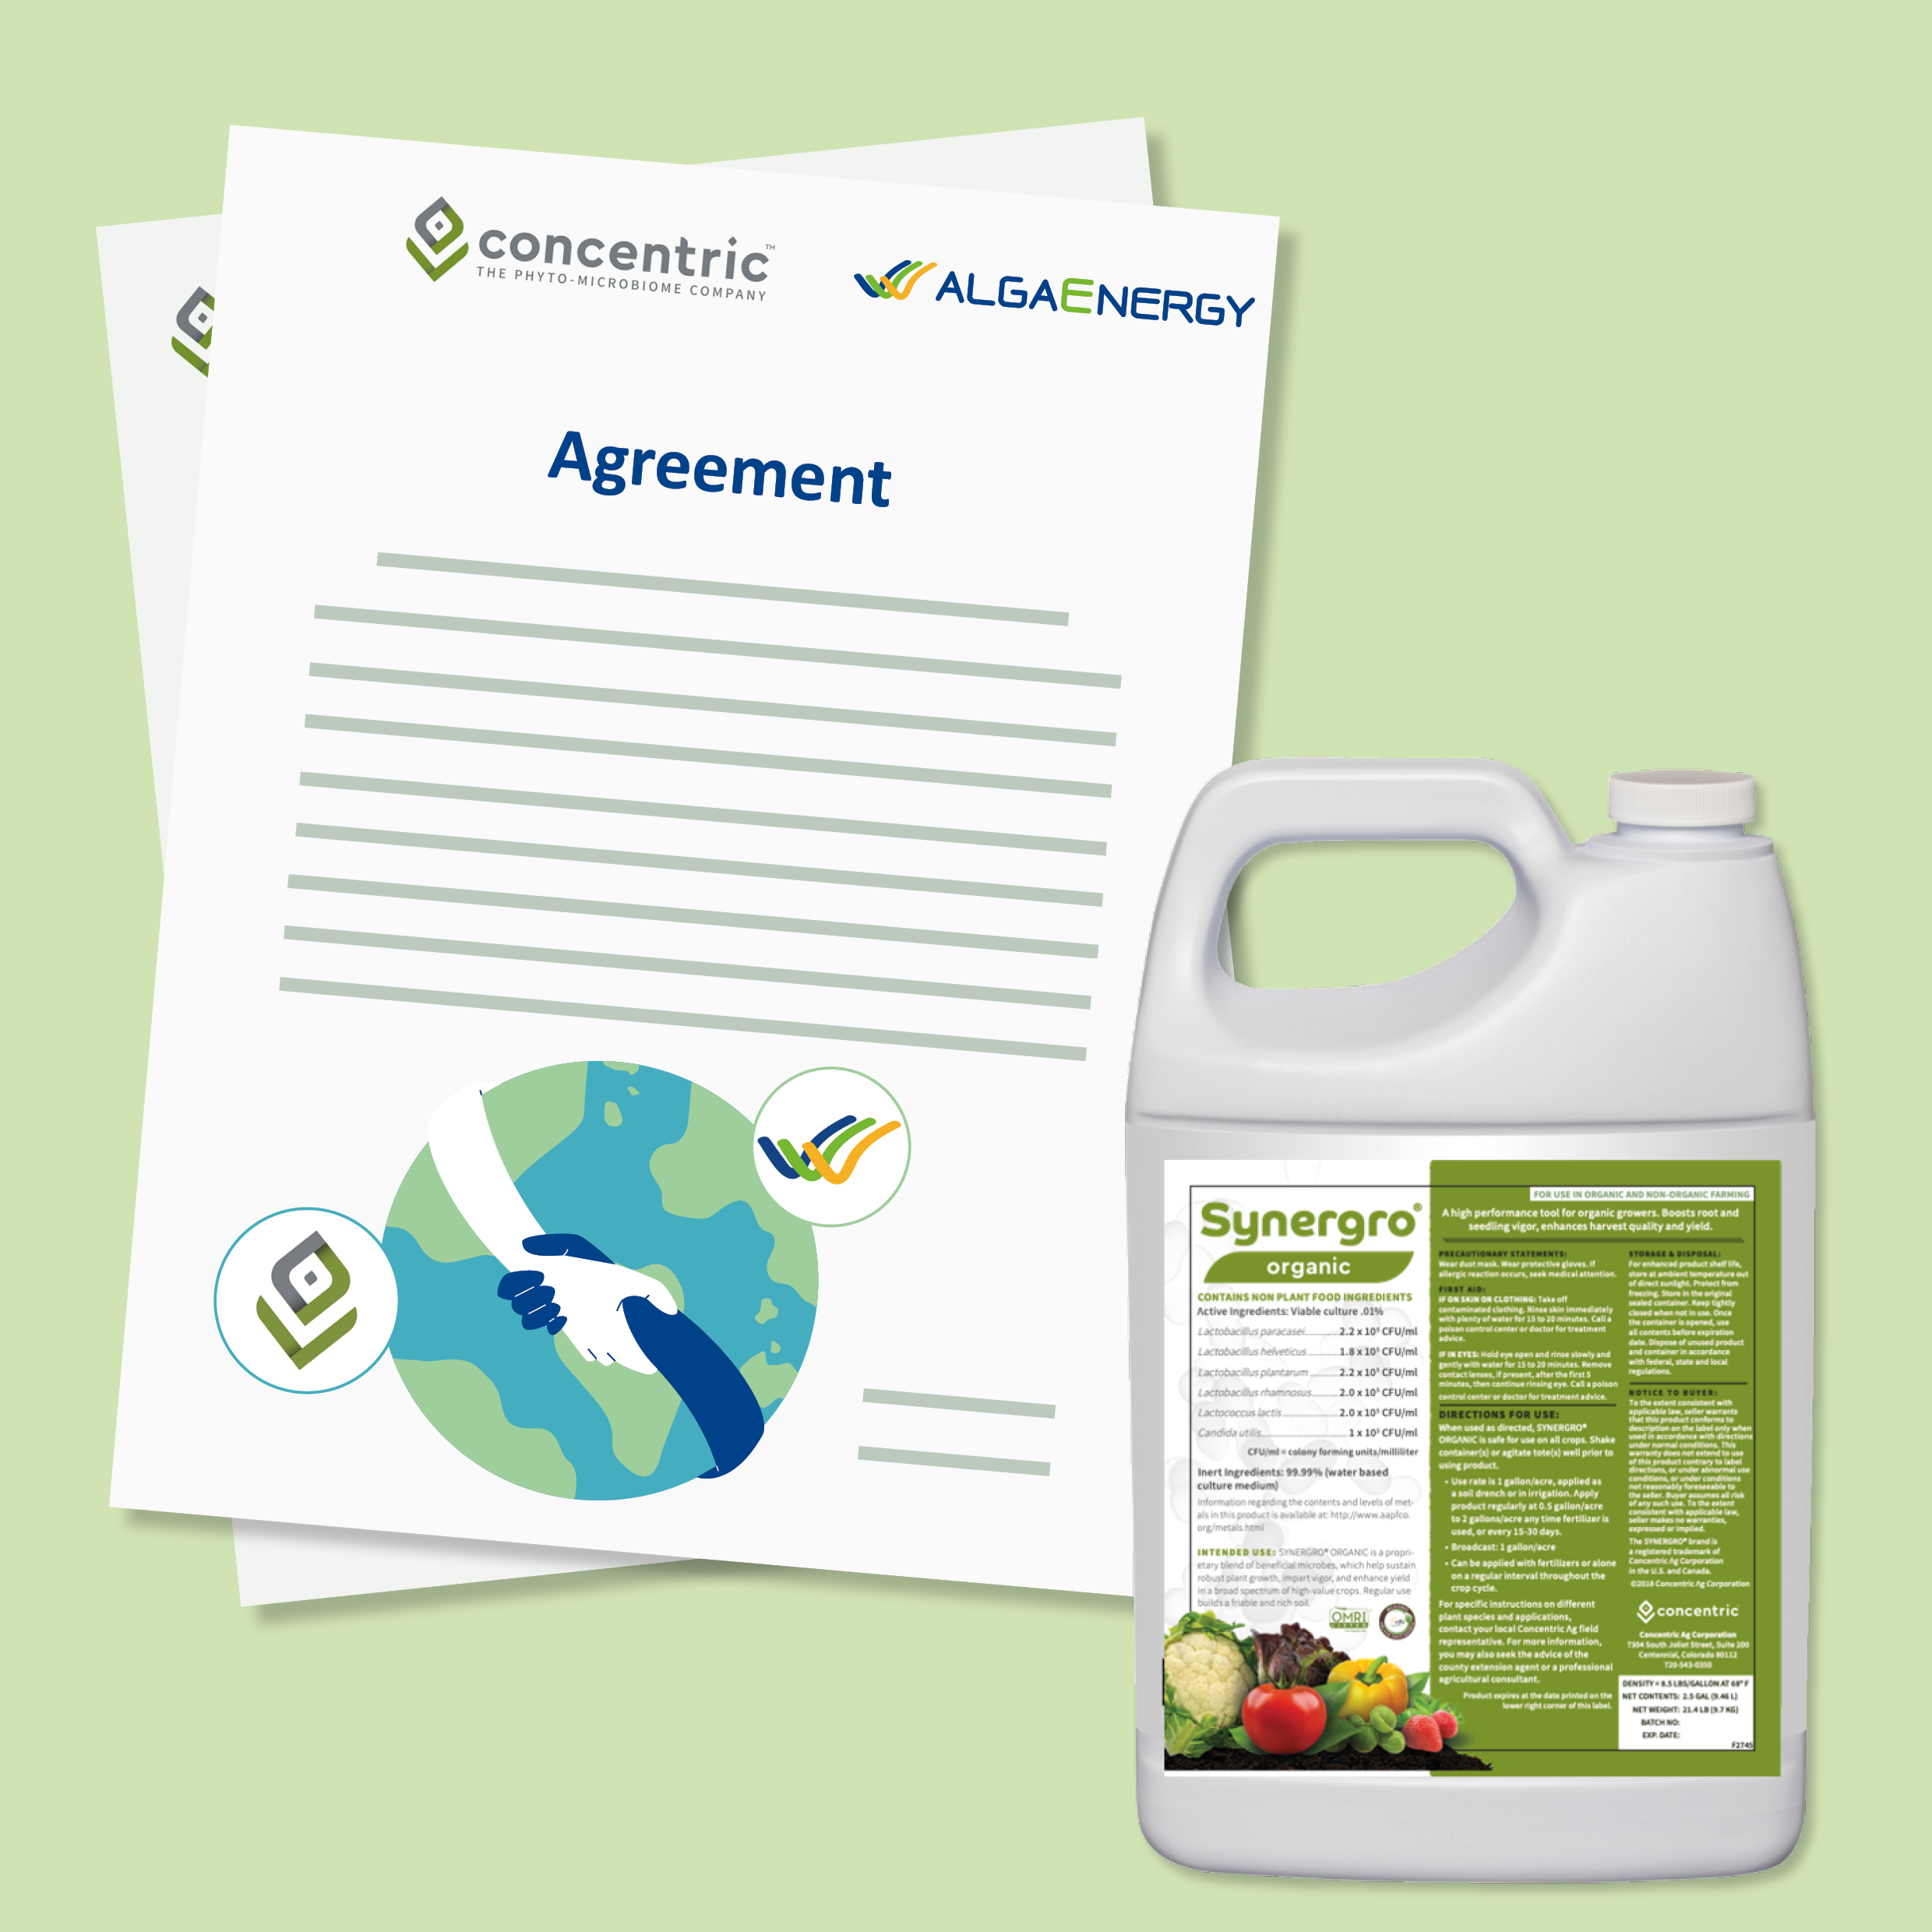 AlgaEnergy and Concentric Ag enter into distribution and product development agreements